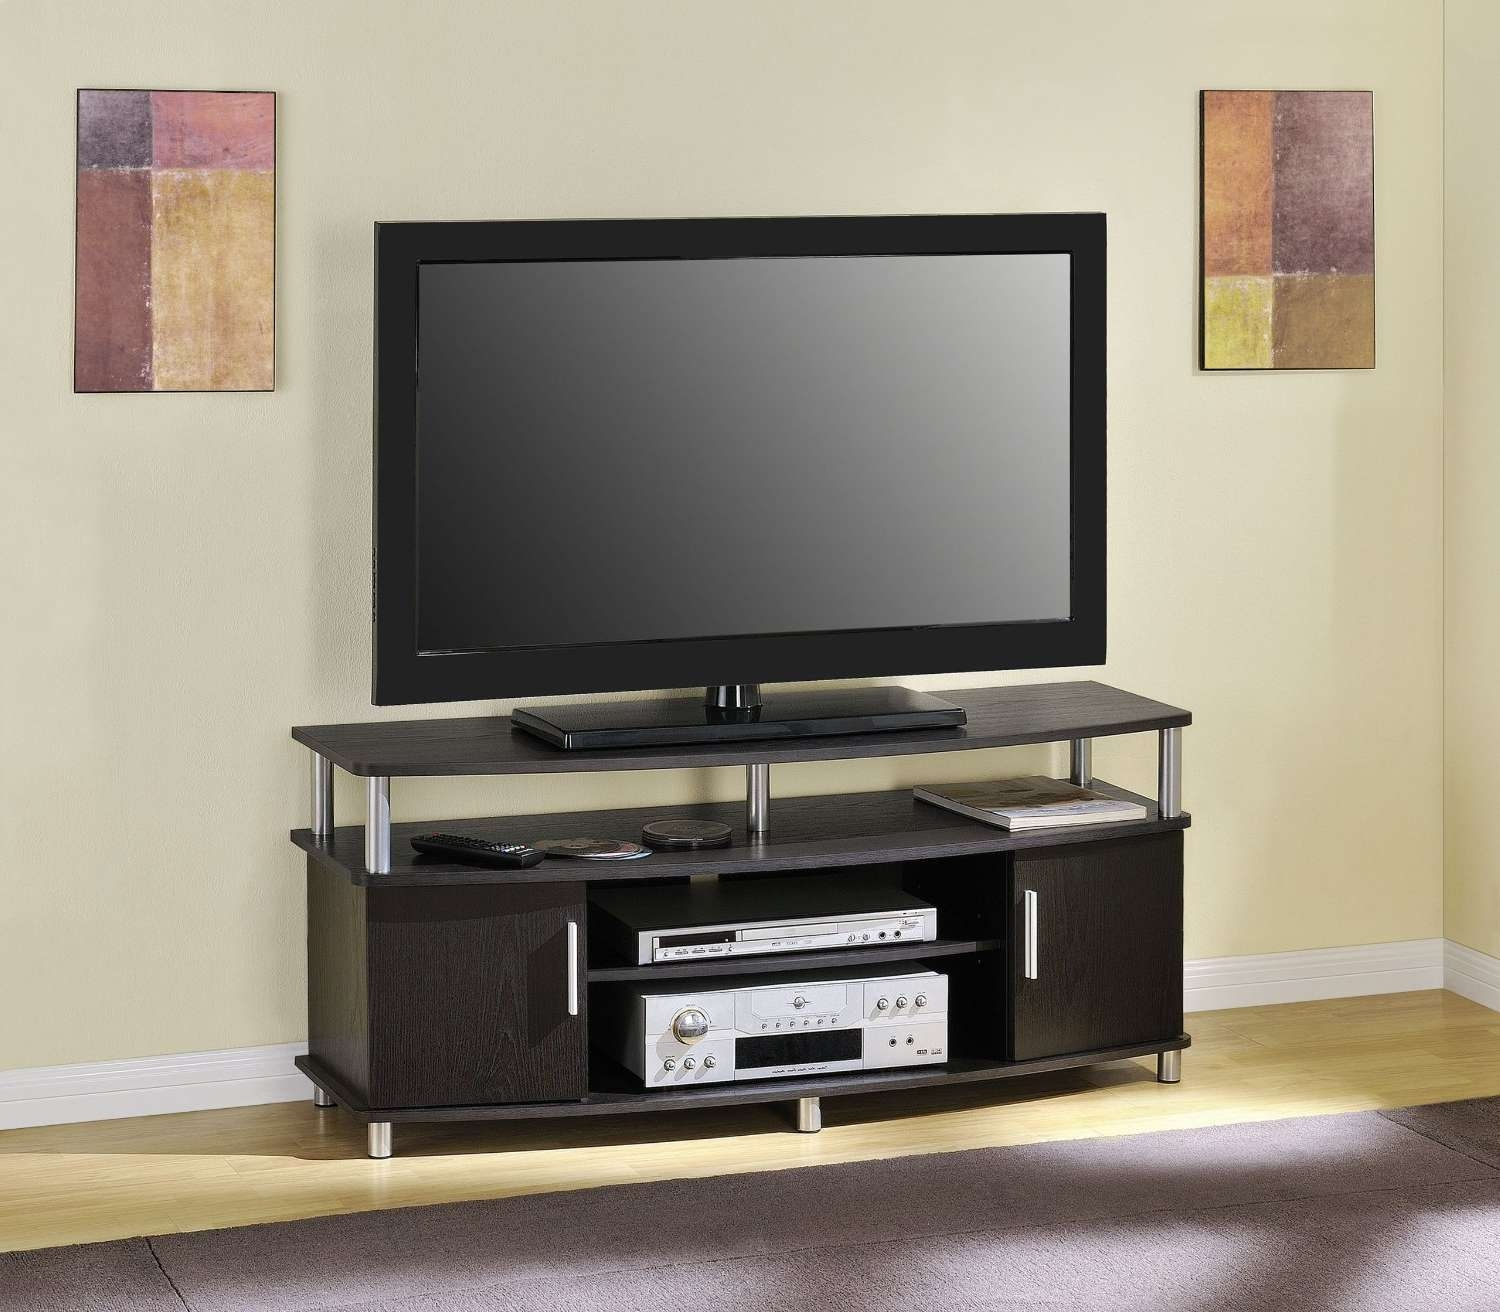 Tv Stands: 7 Best Selling Flat Screen Tv Stands 2017 Intended For Tv Stands 40 Inches Wide (View 14 of 15)